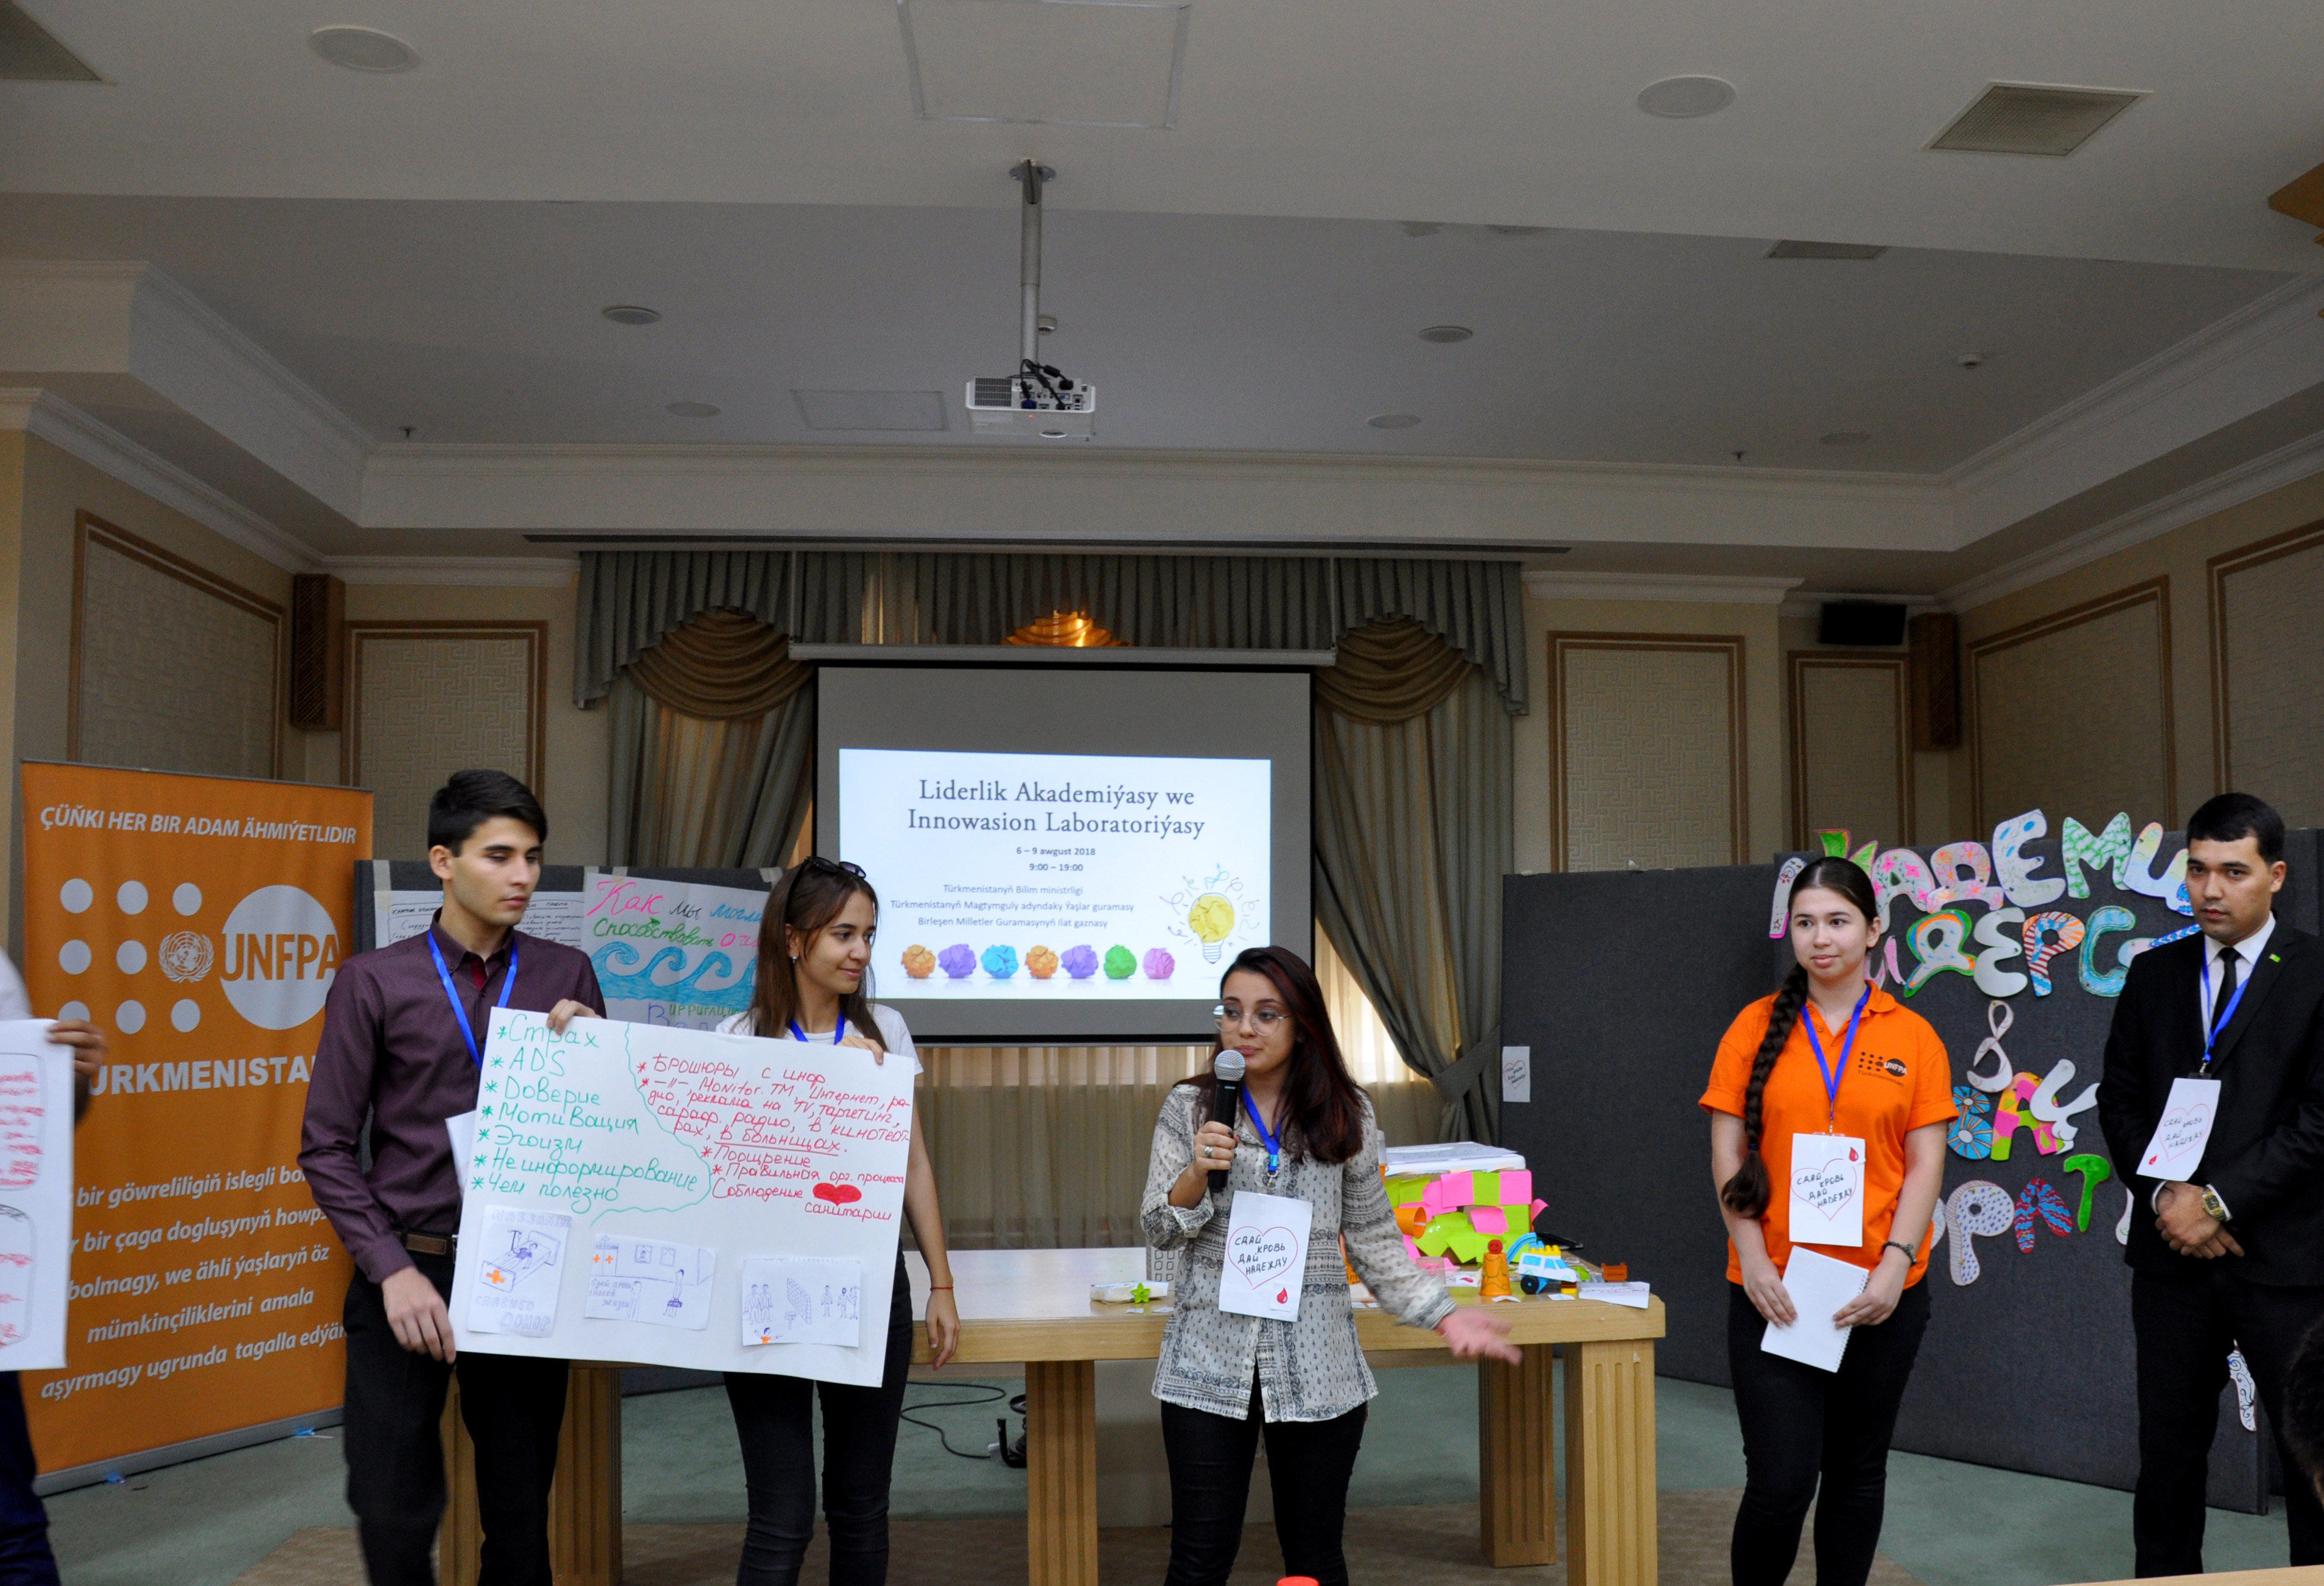 Young people present their project at the event.